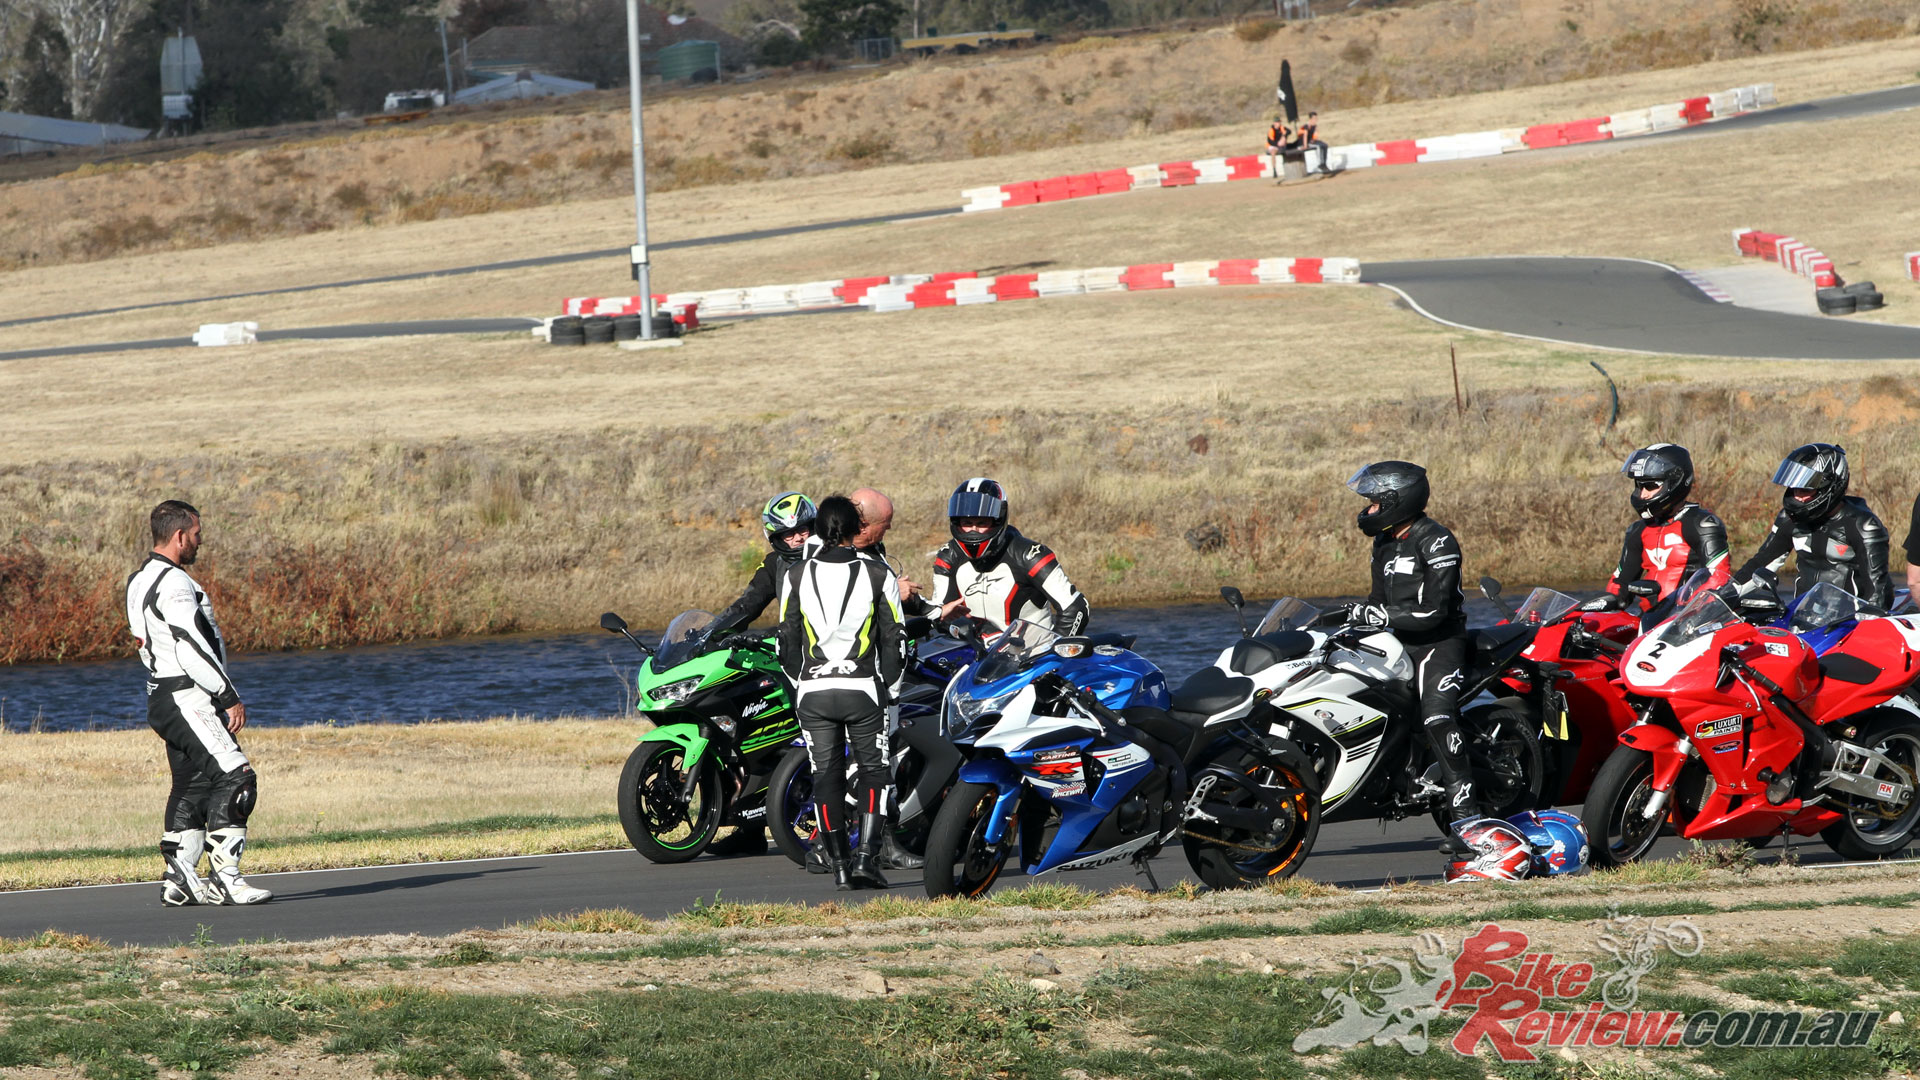 The track also offers a great location for learning without the worries of the road